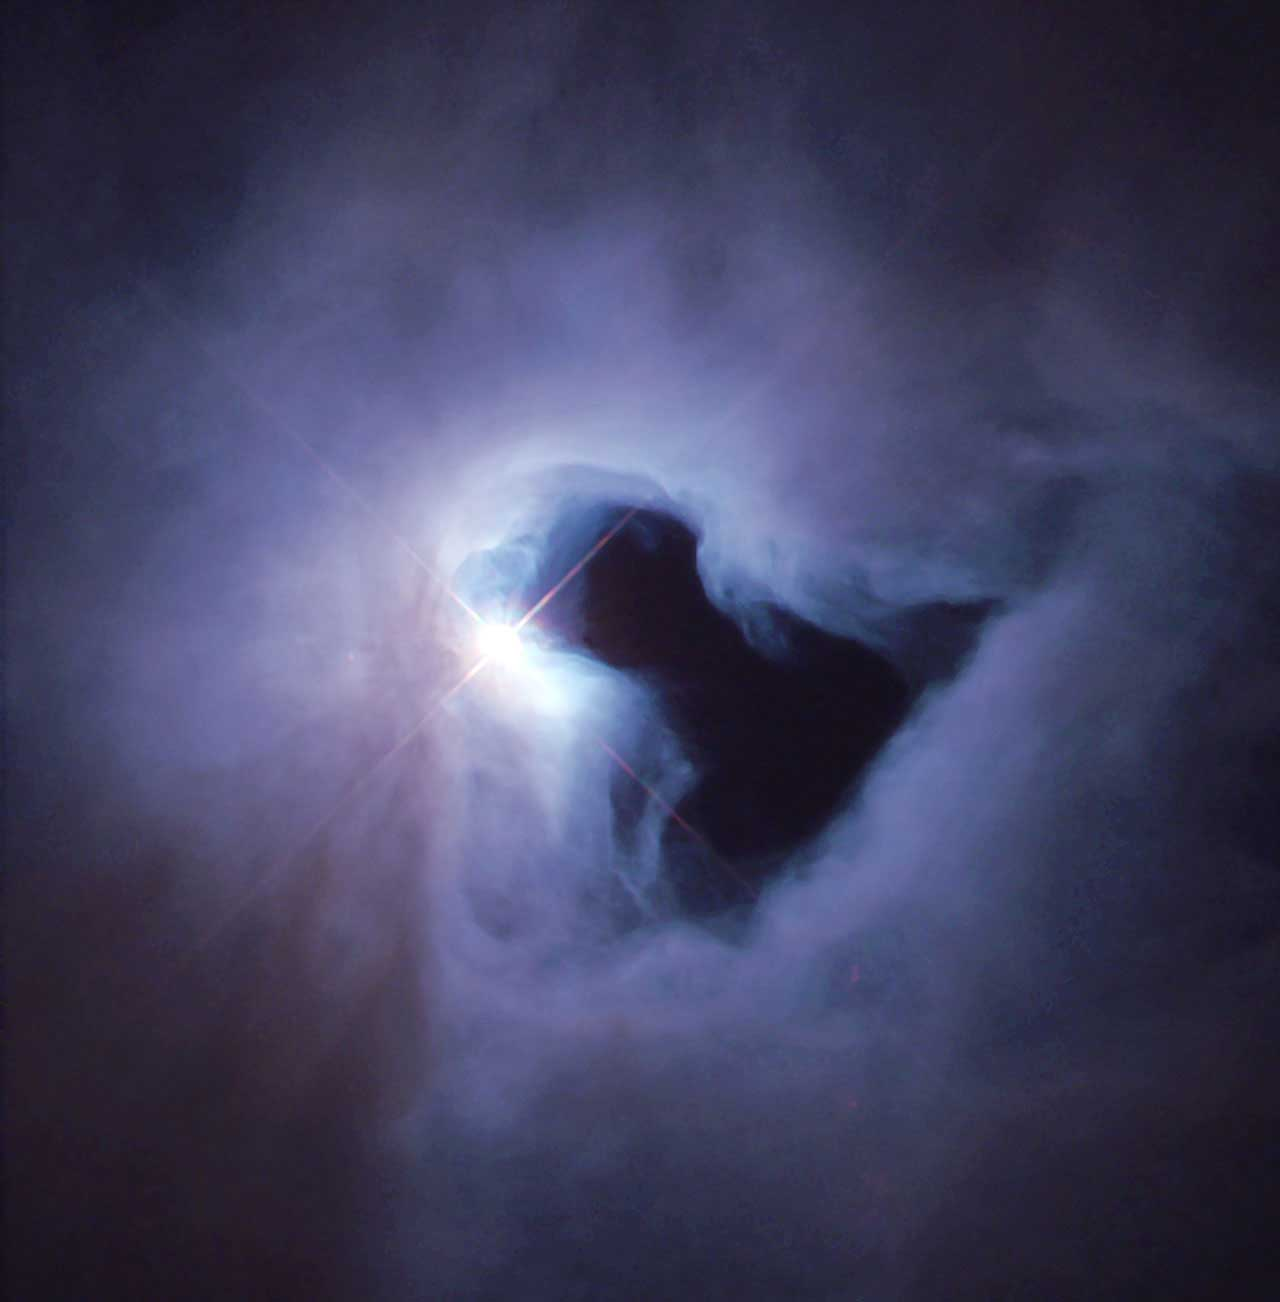 <strong>NGC 1999</strong>:                                   NGC 1999 is an example of a reflection nebula. A reflection nebula shines only because the light from an embedded source illuminates its dust; the nebula does not emit any visible light of its own. NGC 1999 lies close to the Orion Nebula, about 1,500 light-years from Earth, in a region of our Milky Way galaxy where new stars are being formed actively.                                   <i>Image released on March 2, 2000</i>